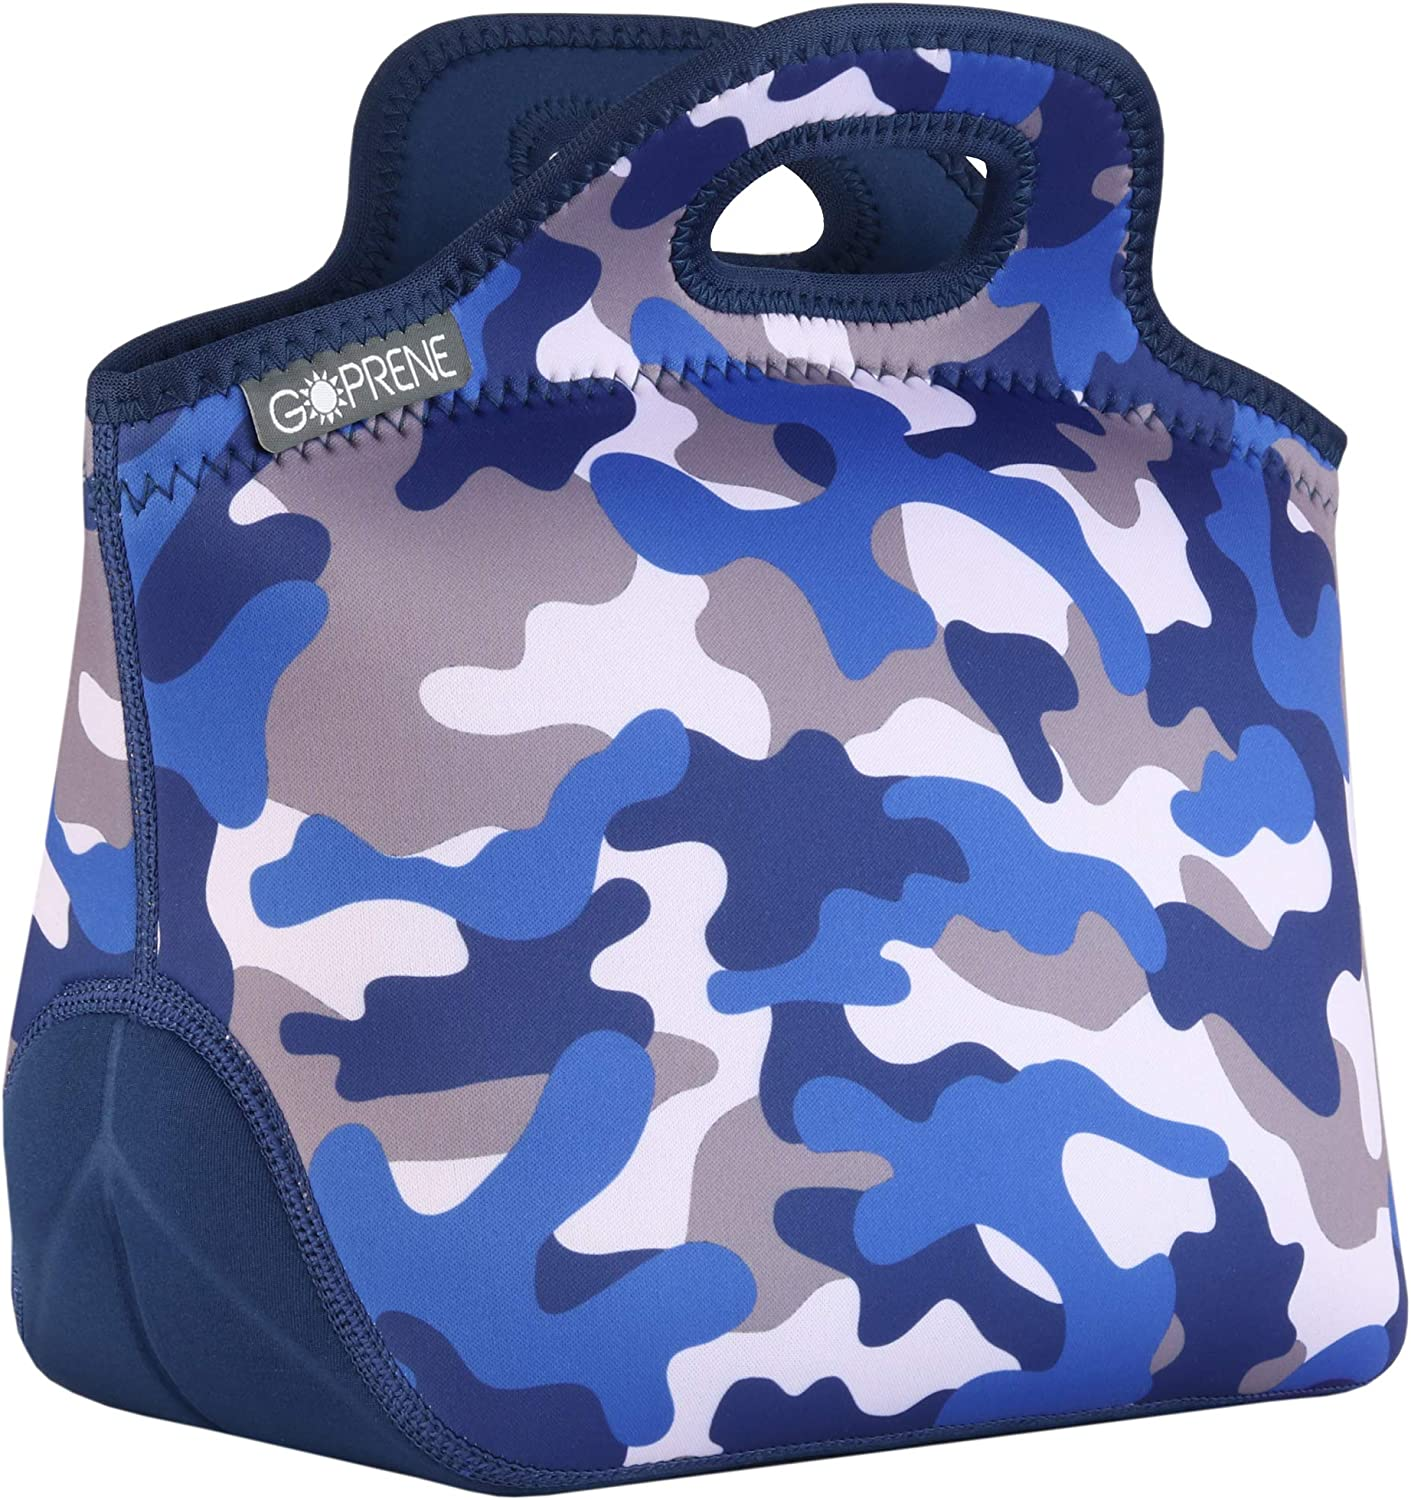 GOPRENE Lunch Bag For Boys, Fits A Kids Lunch Box, Insulated Neoprene Bag, Blue Camo, Bento Box and Thermos Fit Easily, Keeps Food Cold 4 Hours, Perfect For Your Son, Child, or Toddler at School